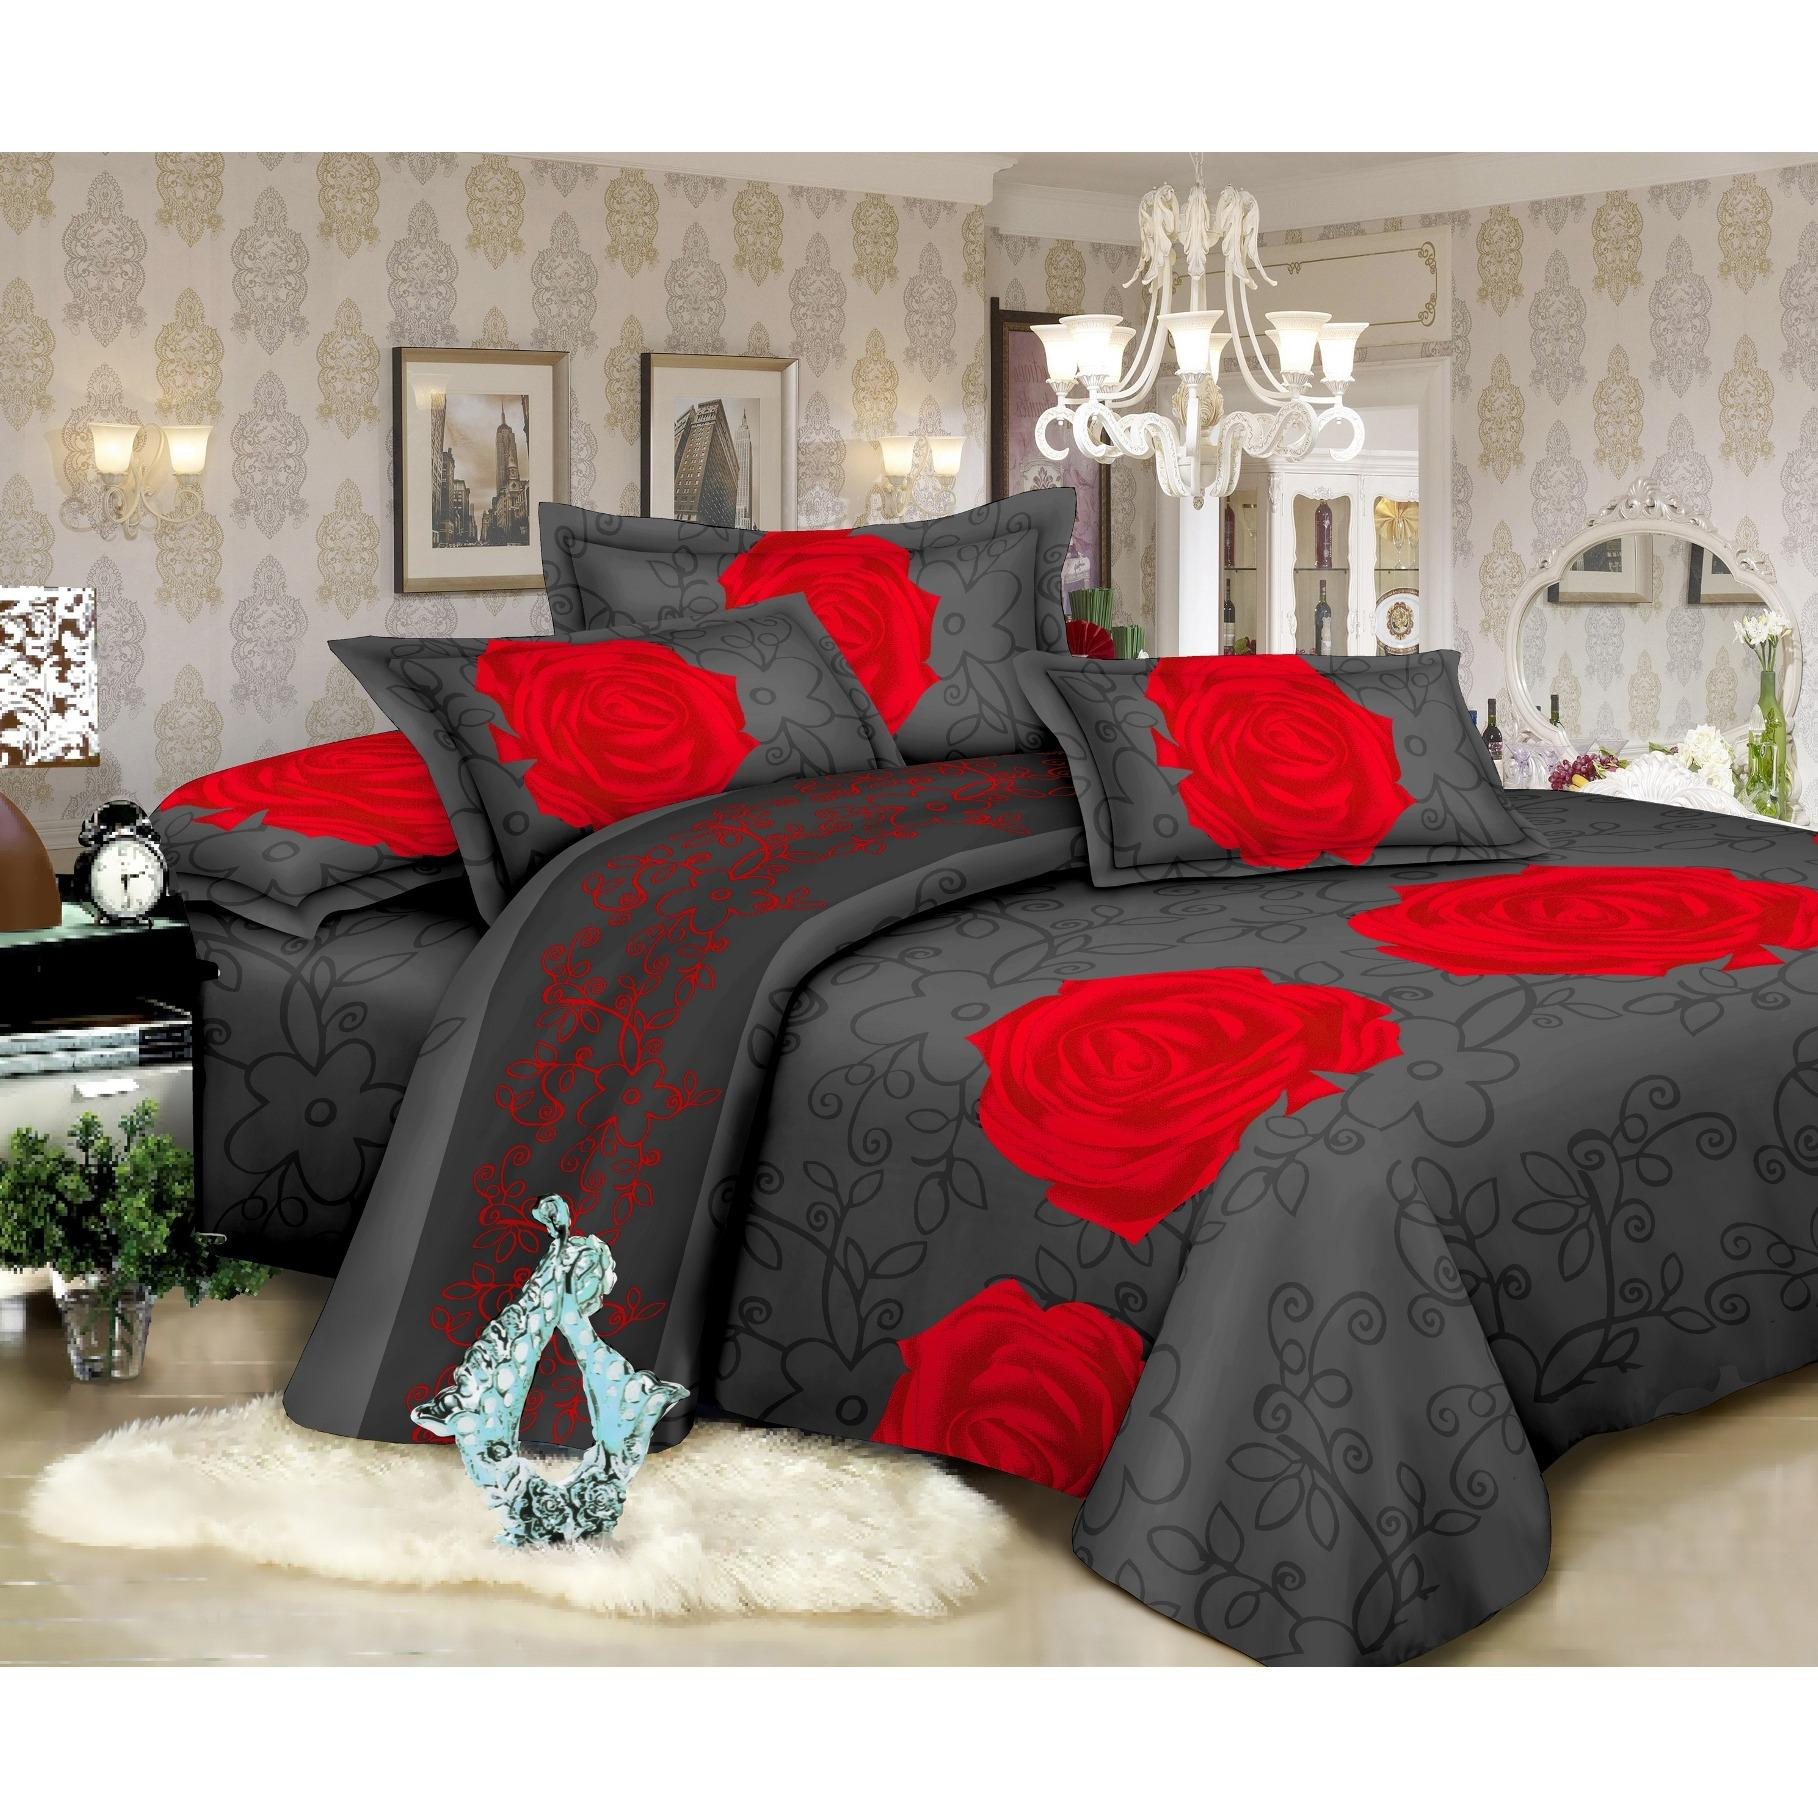 red product cover uk set with polycottonuk duvet sizes polycotton pillowcases grace